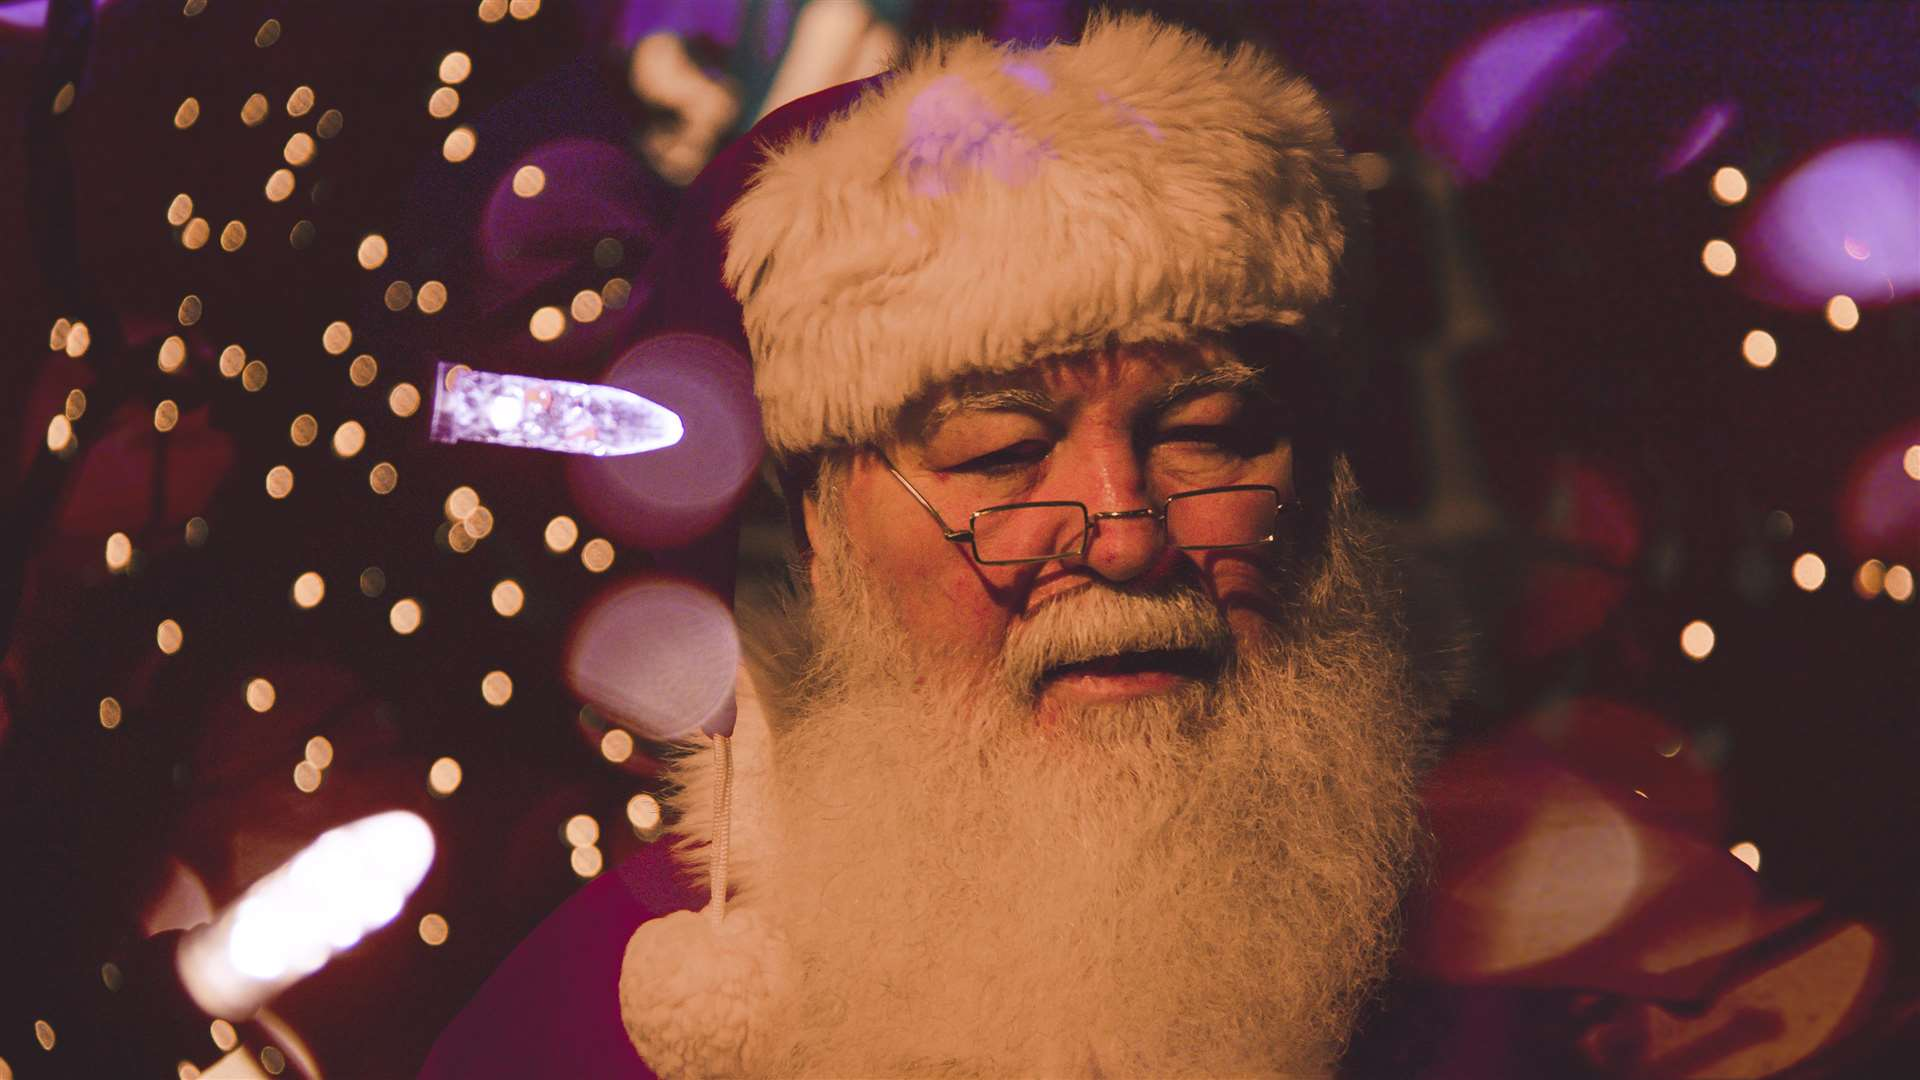 Storytelling sessions with Santa and the showing of Christmas films at Fremlin Walk